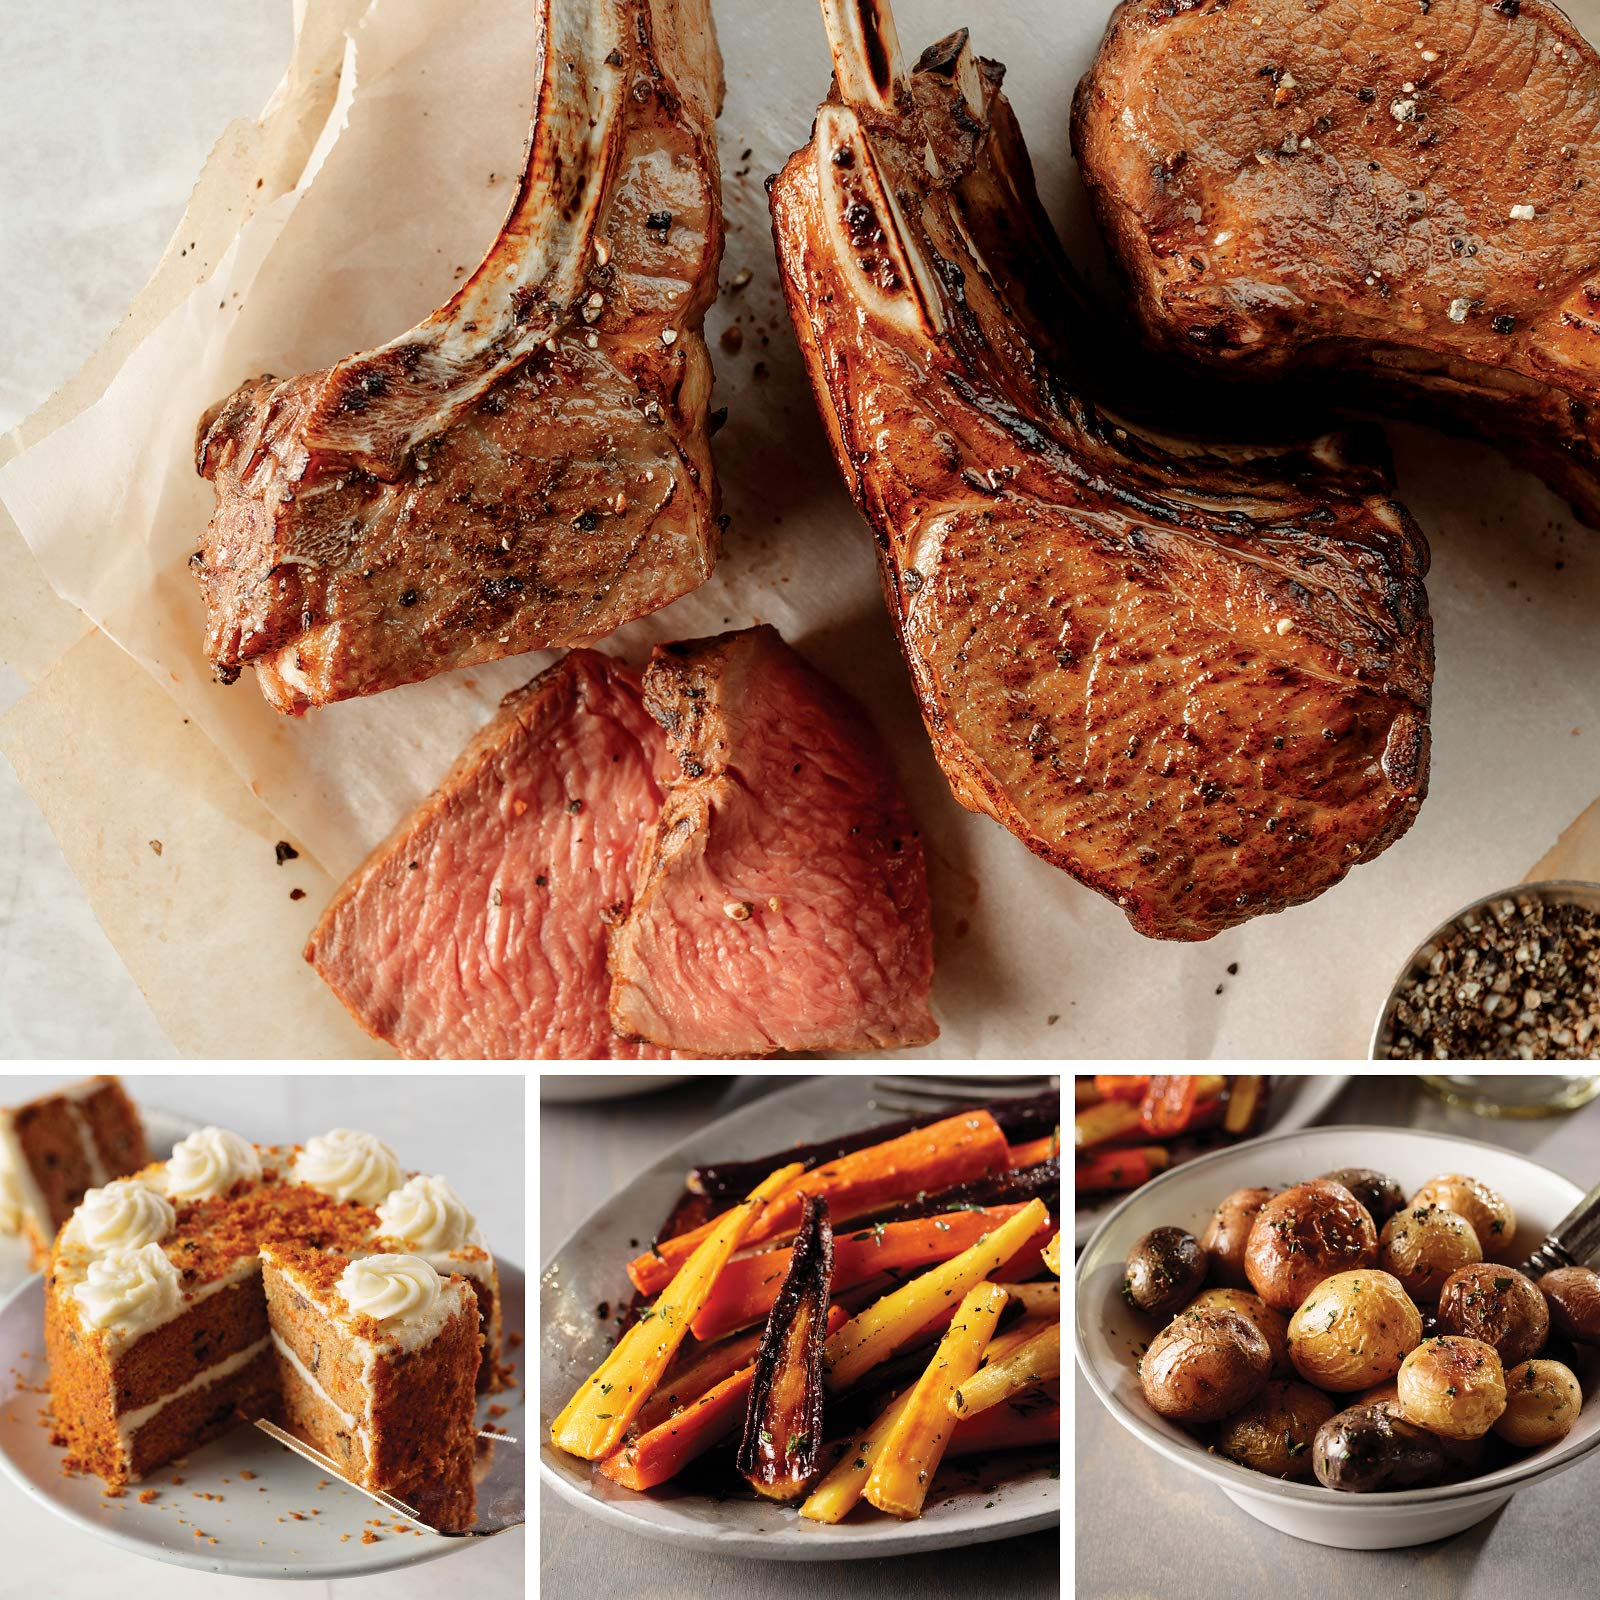 Omaha Steaks Easy Lamb Chop Easter (9-Piece with New Zealand Lamb Rib Chops, Tricolor Potatoes in Brown Butter Sauce, Glazed Rainbow Carrots, and A Two-Layer Carrot Cake)